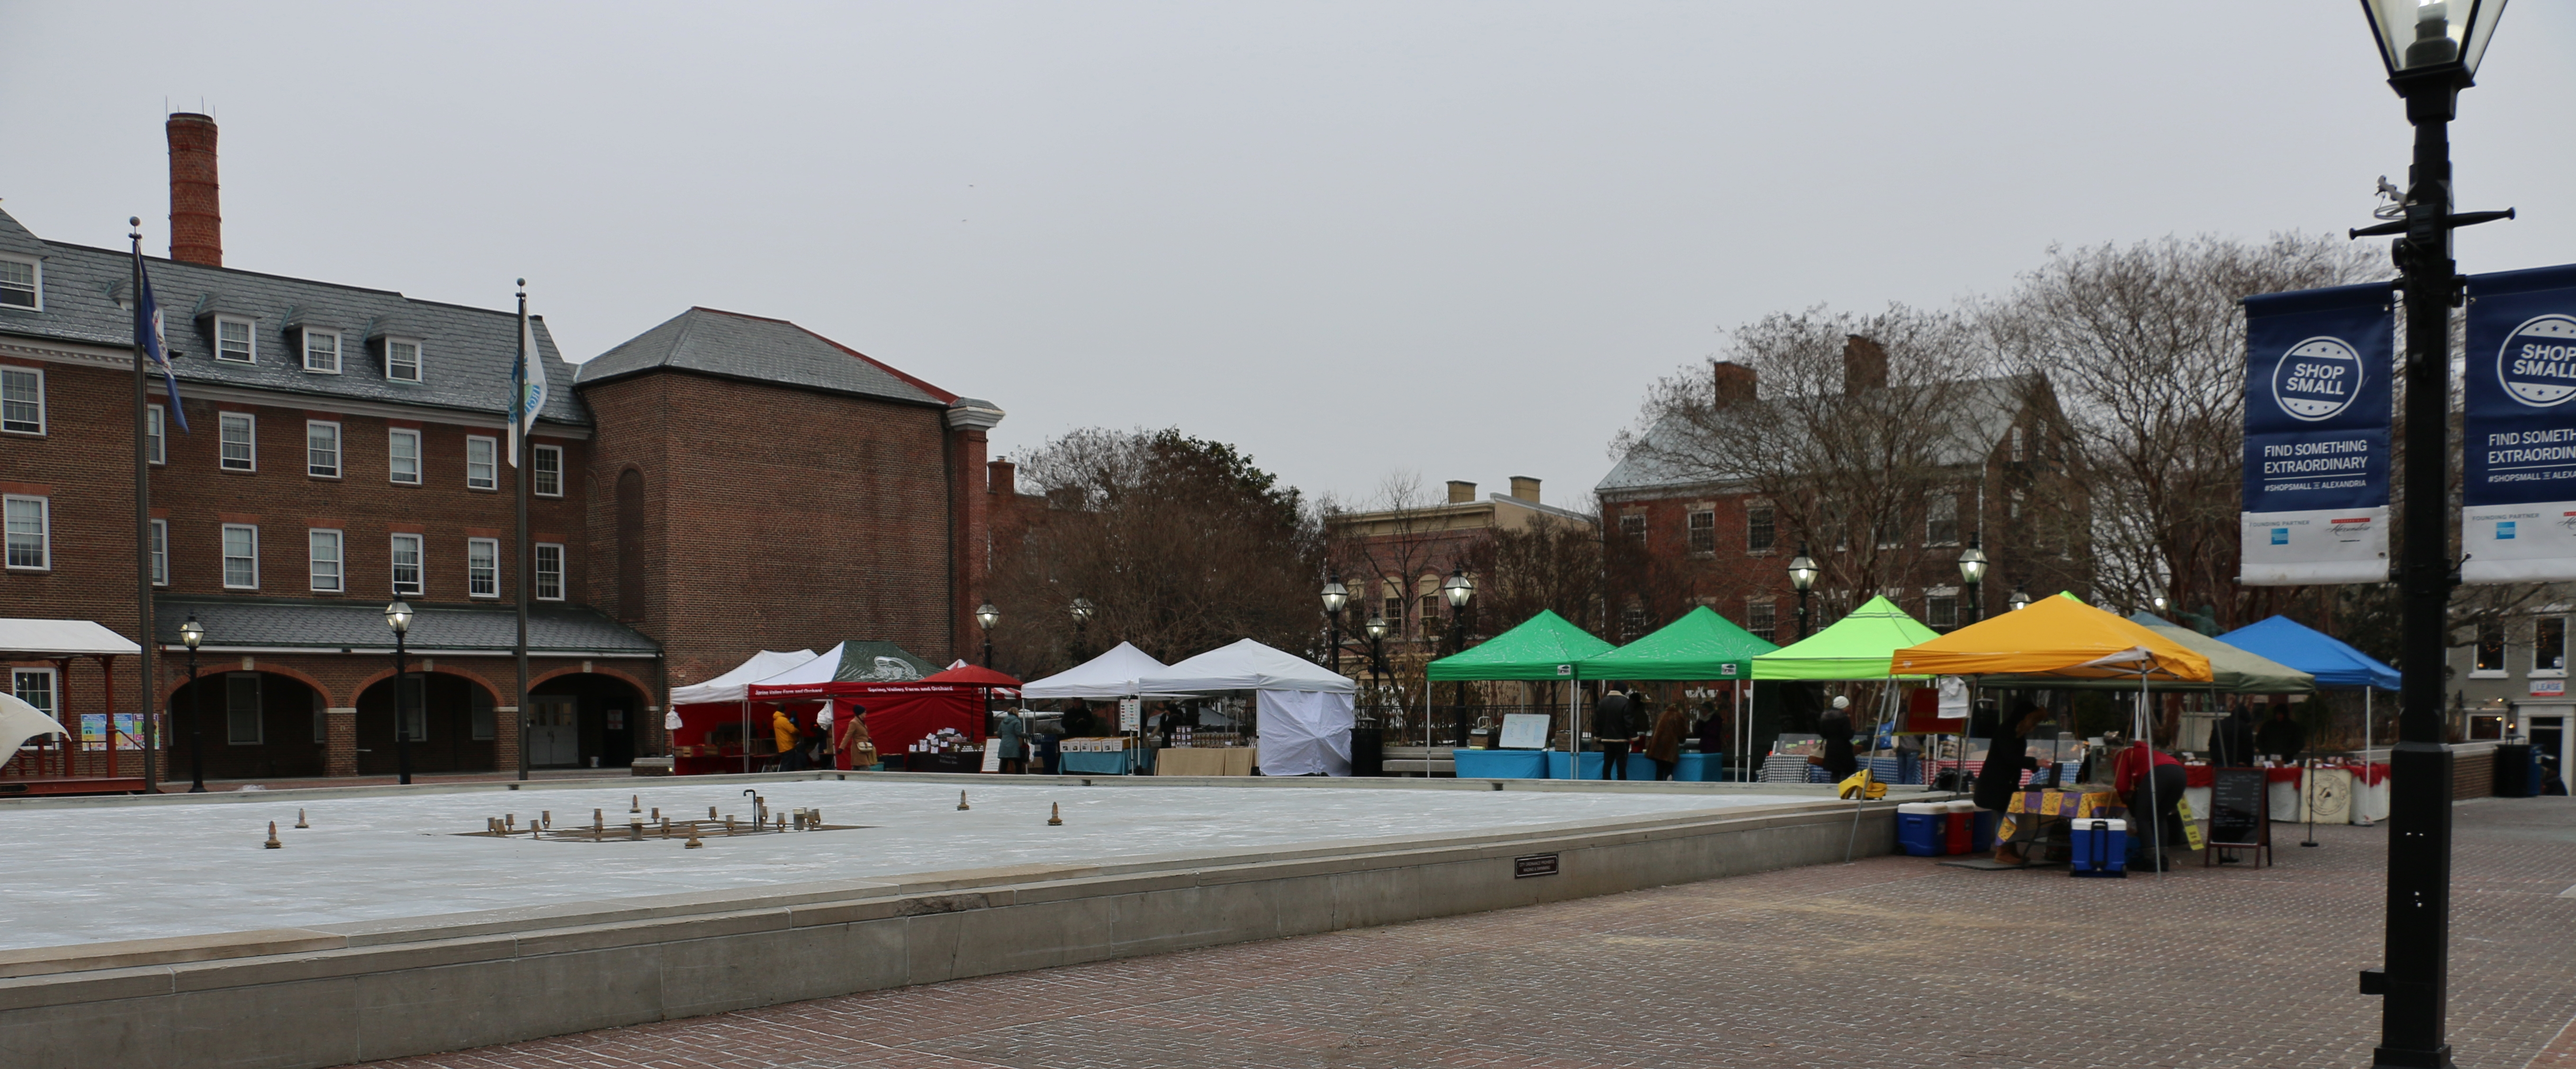 old-town-famers-market-tents & old-town-famers-market-tents - Jessica Richardson